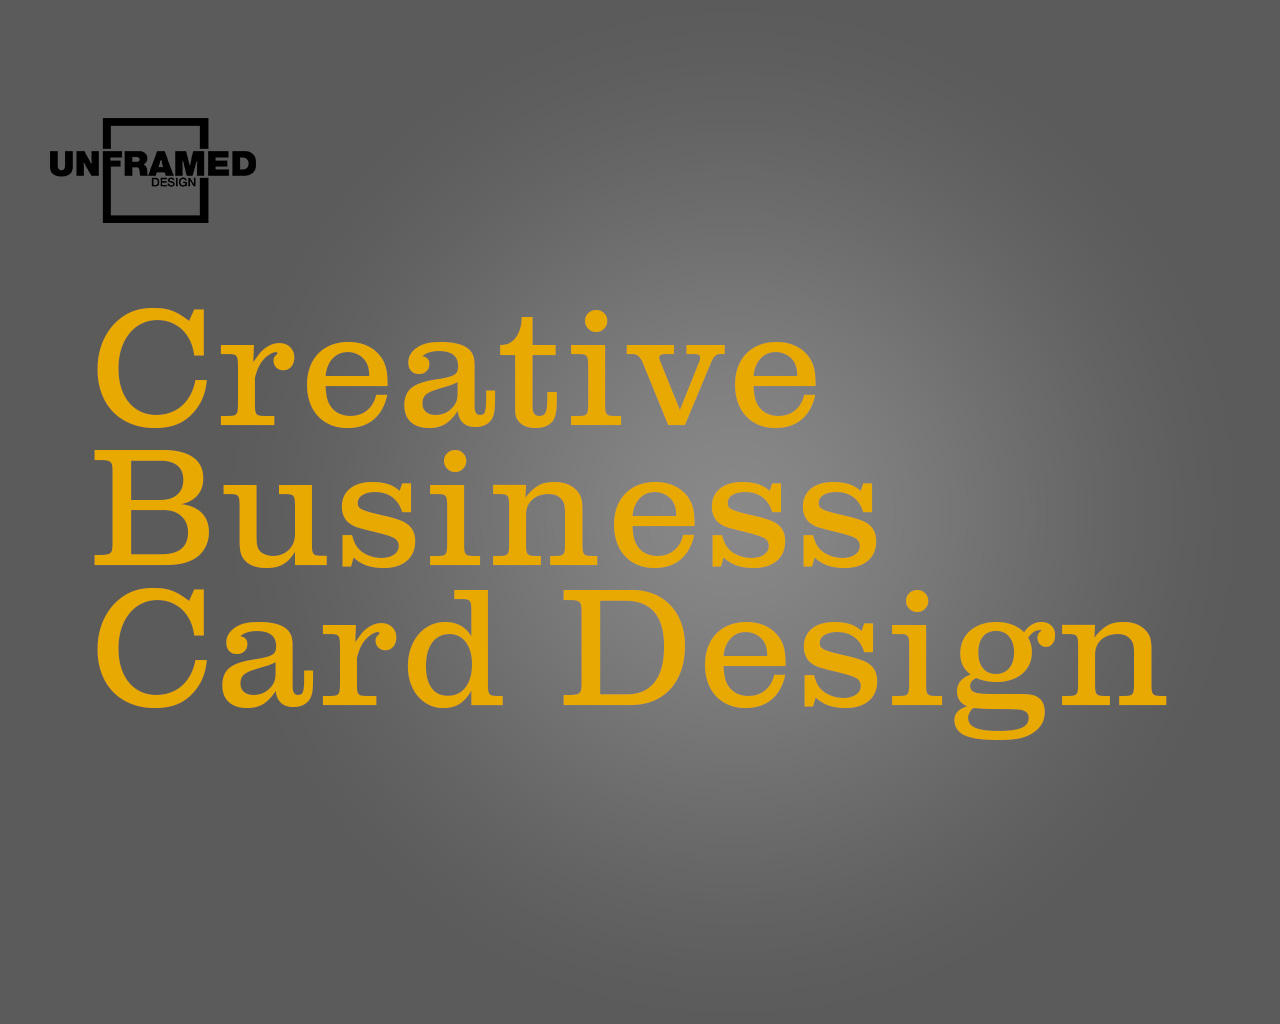 Creative Business Card Design by Pixels_and_Paper - 67573